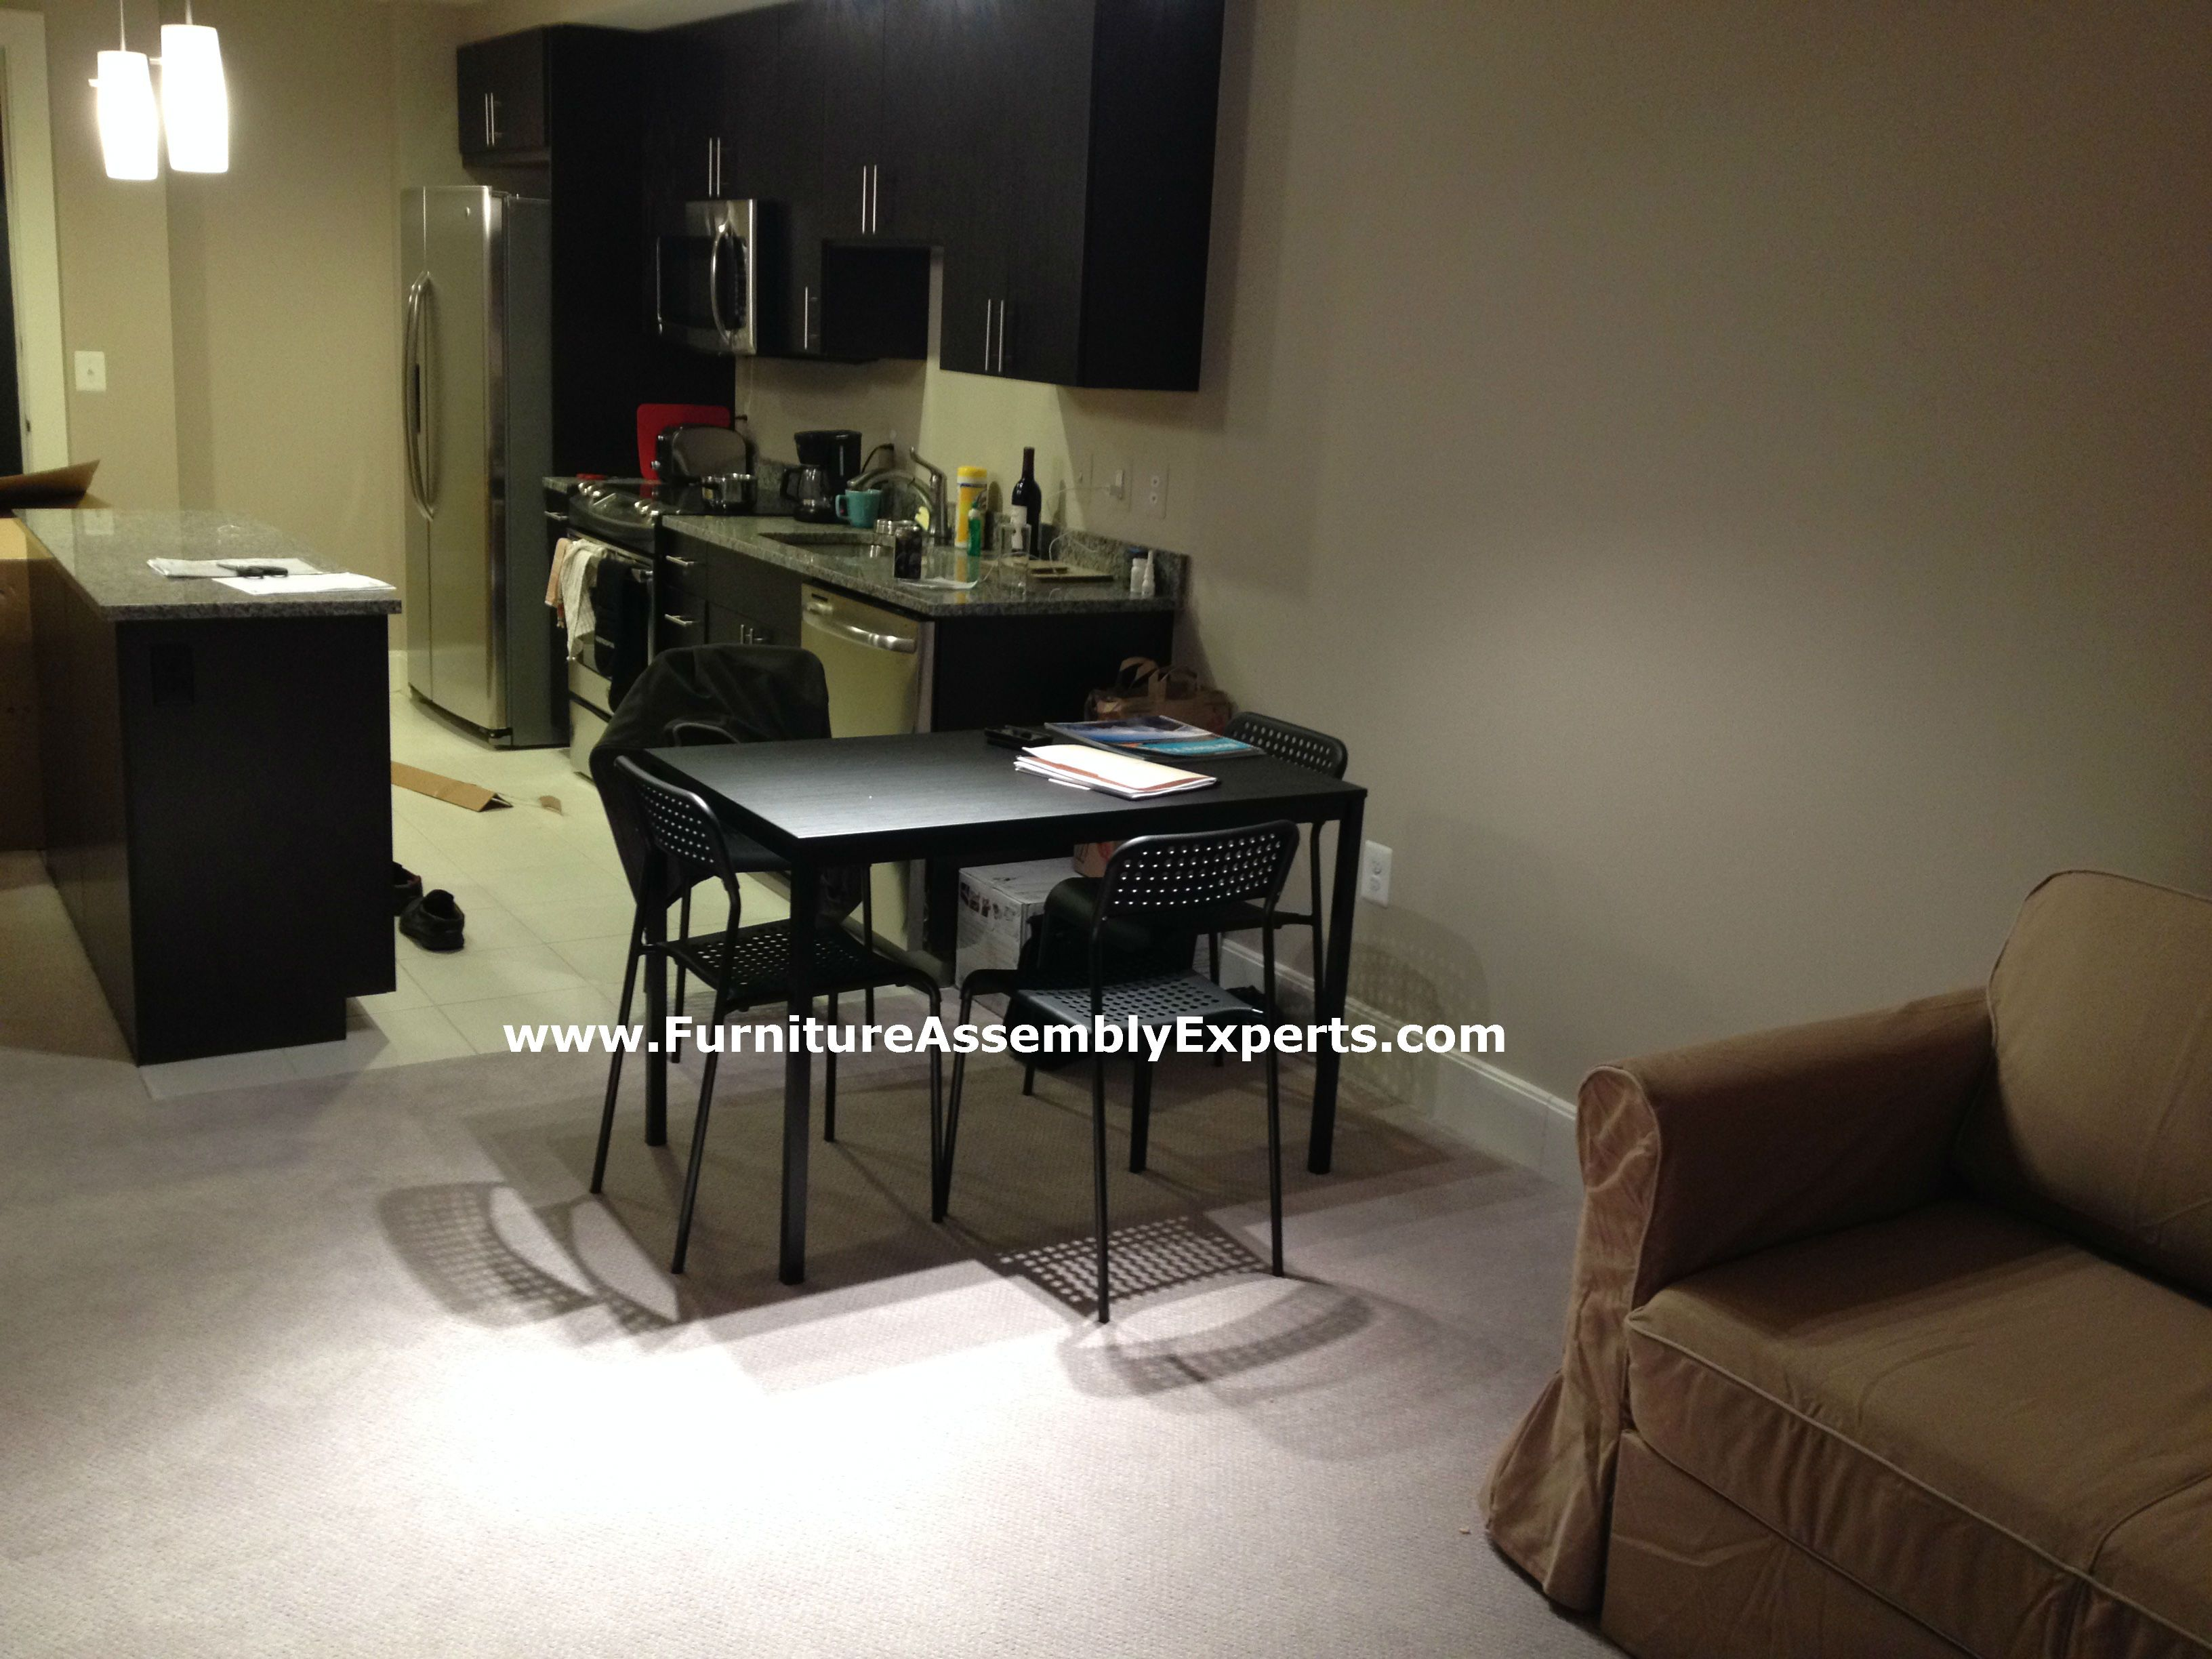 Ikea Dining Table And Chairs Assembled In Philadelphia PA By Furniture  Assembly Experts LLC